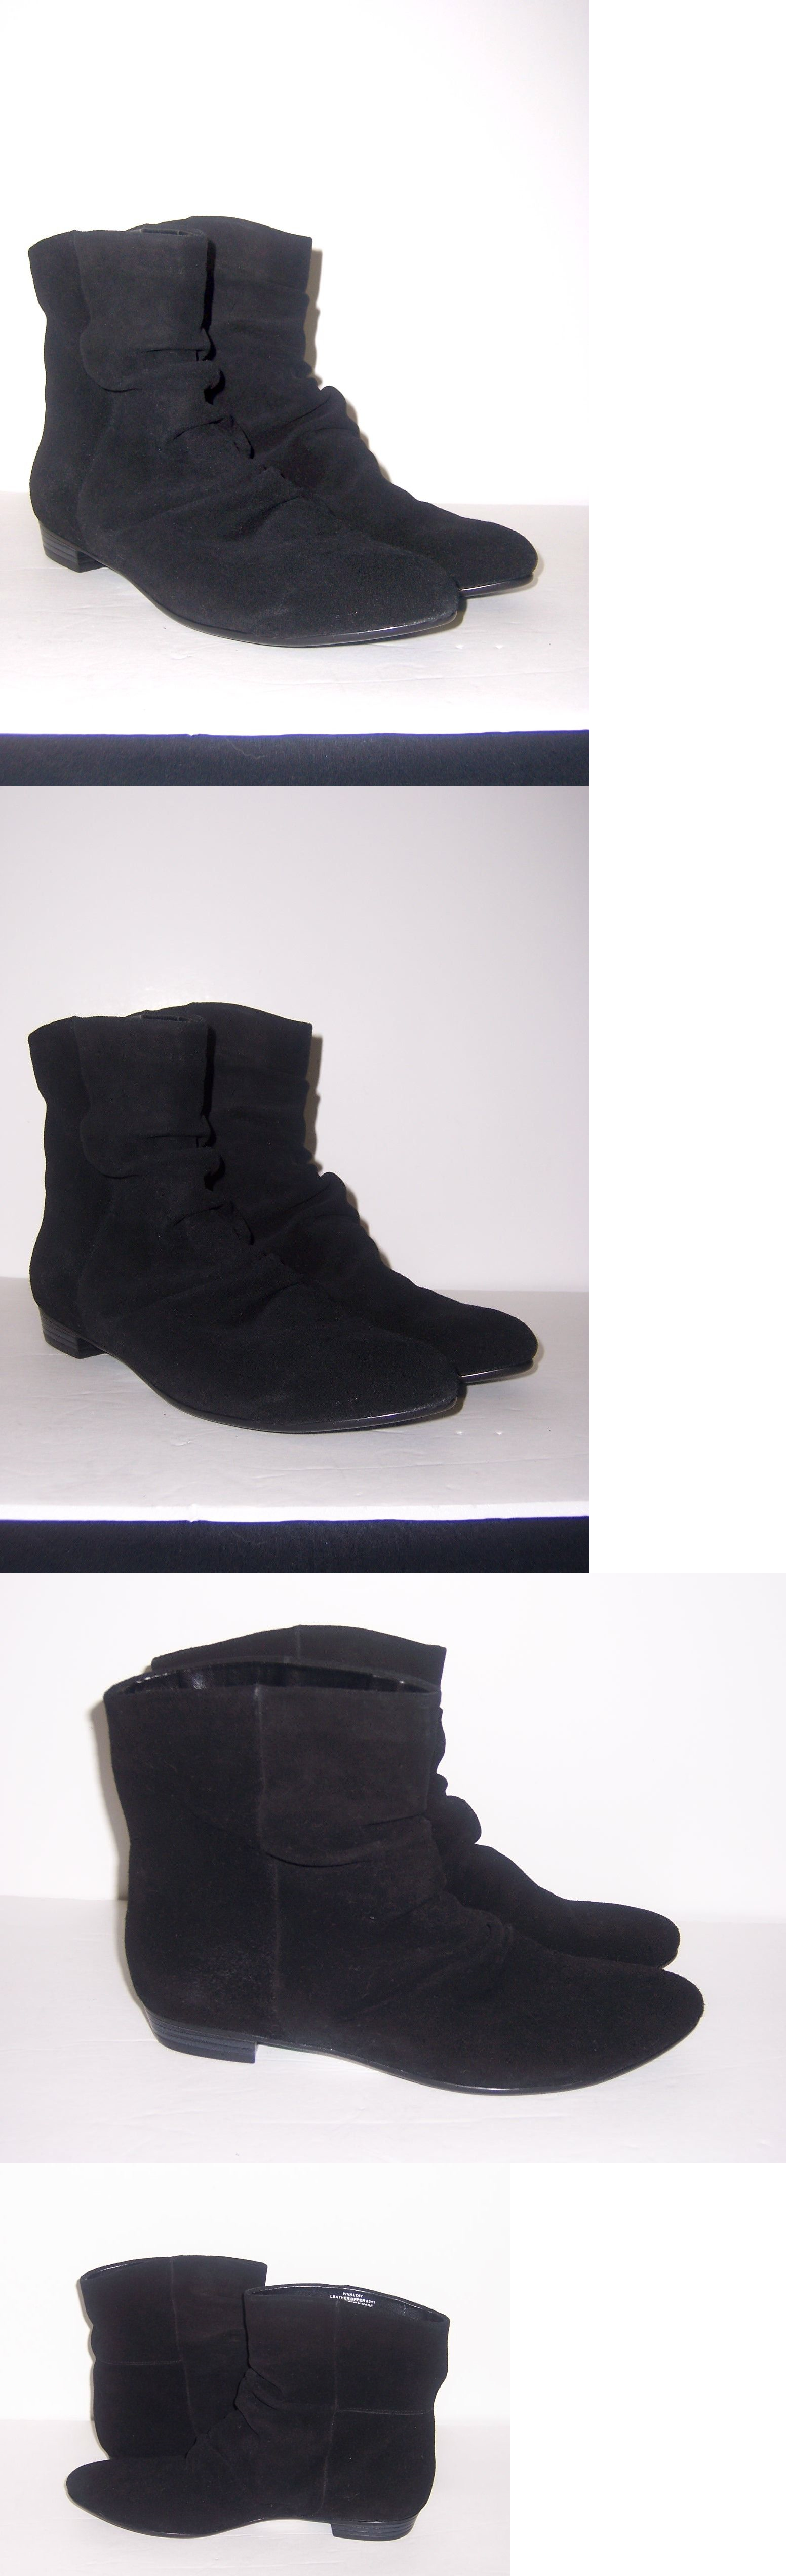 8d9831073d60 Boots 53557  Nine West Women S Wnaltay Suede Fashion Ankle Boots Size 8M -   BUY IT NOW ONLY   33.99 on eBay!